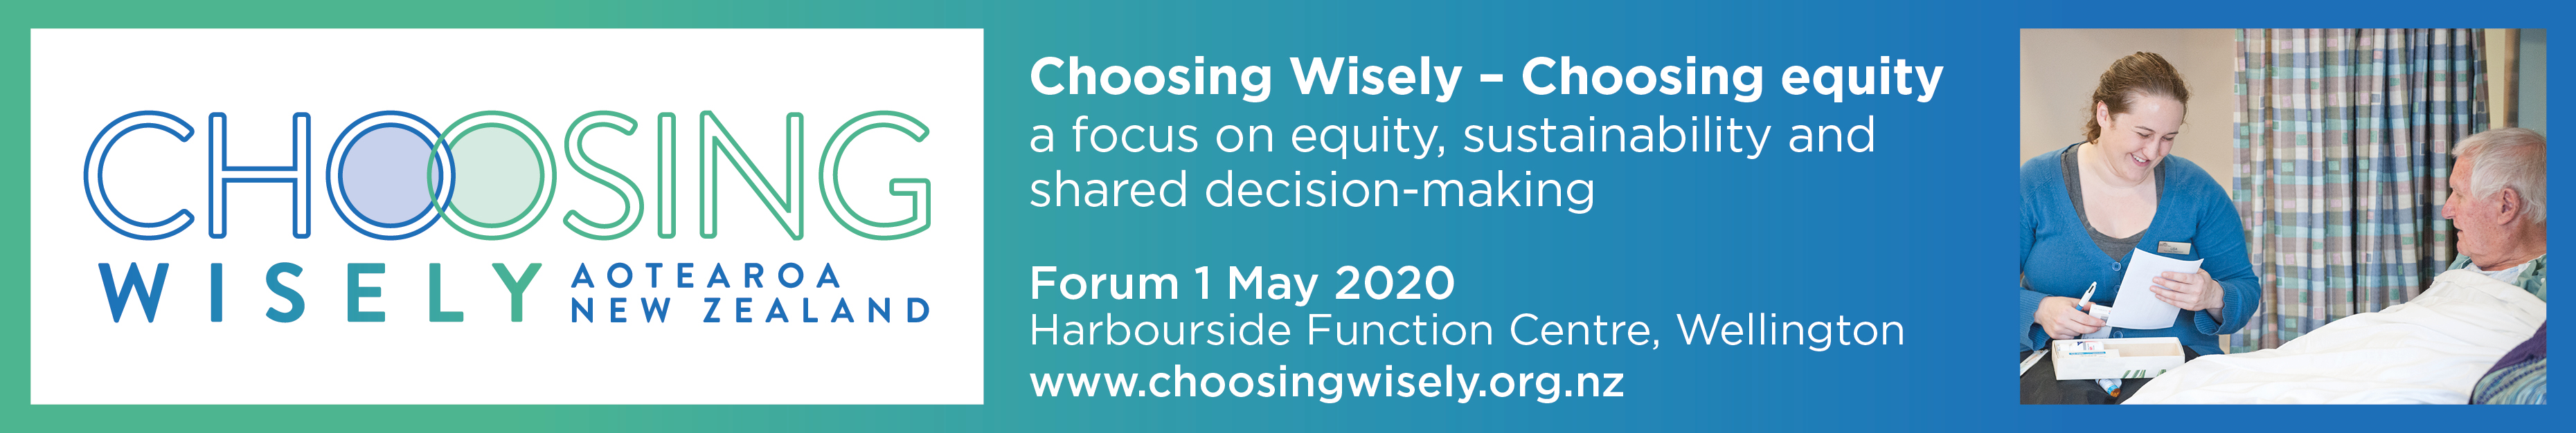 Choosing Wisely - Choosing Equity: a  focus on equity, sustainability & shared decision-making logo